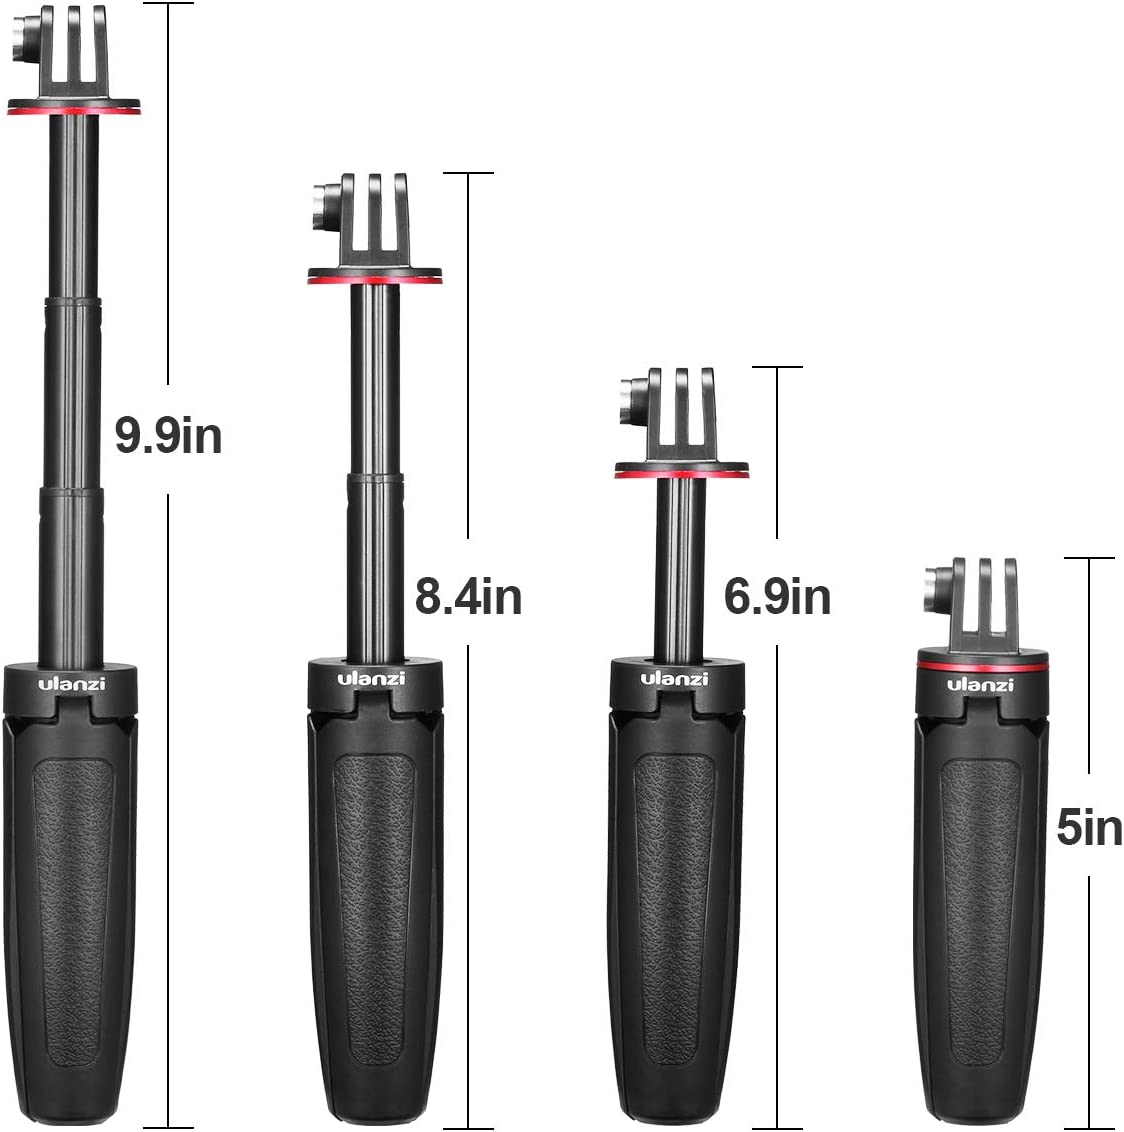 Extendable Selfie Stick Tripod for Gopro,2 in 1 Mini Extension Pole Tripod Compatible with Gopro Hero 8//7//6//5 Black DJI Osmo Action Camera Accessory Kits for Vlog Shooting